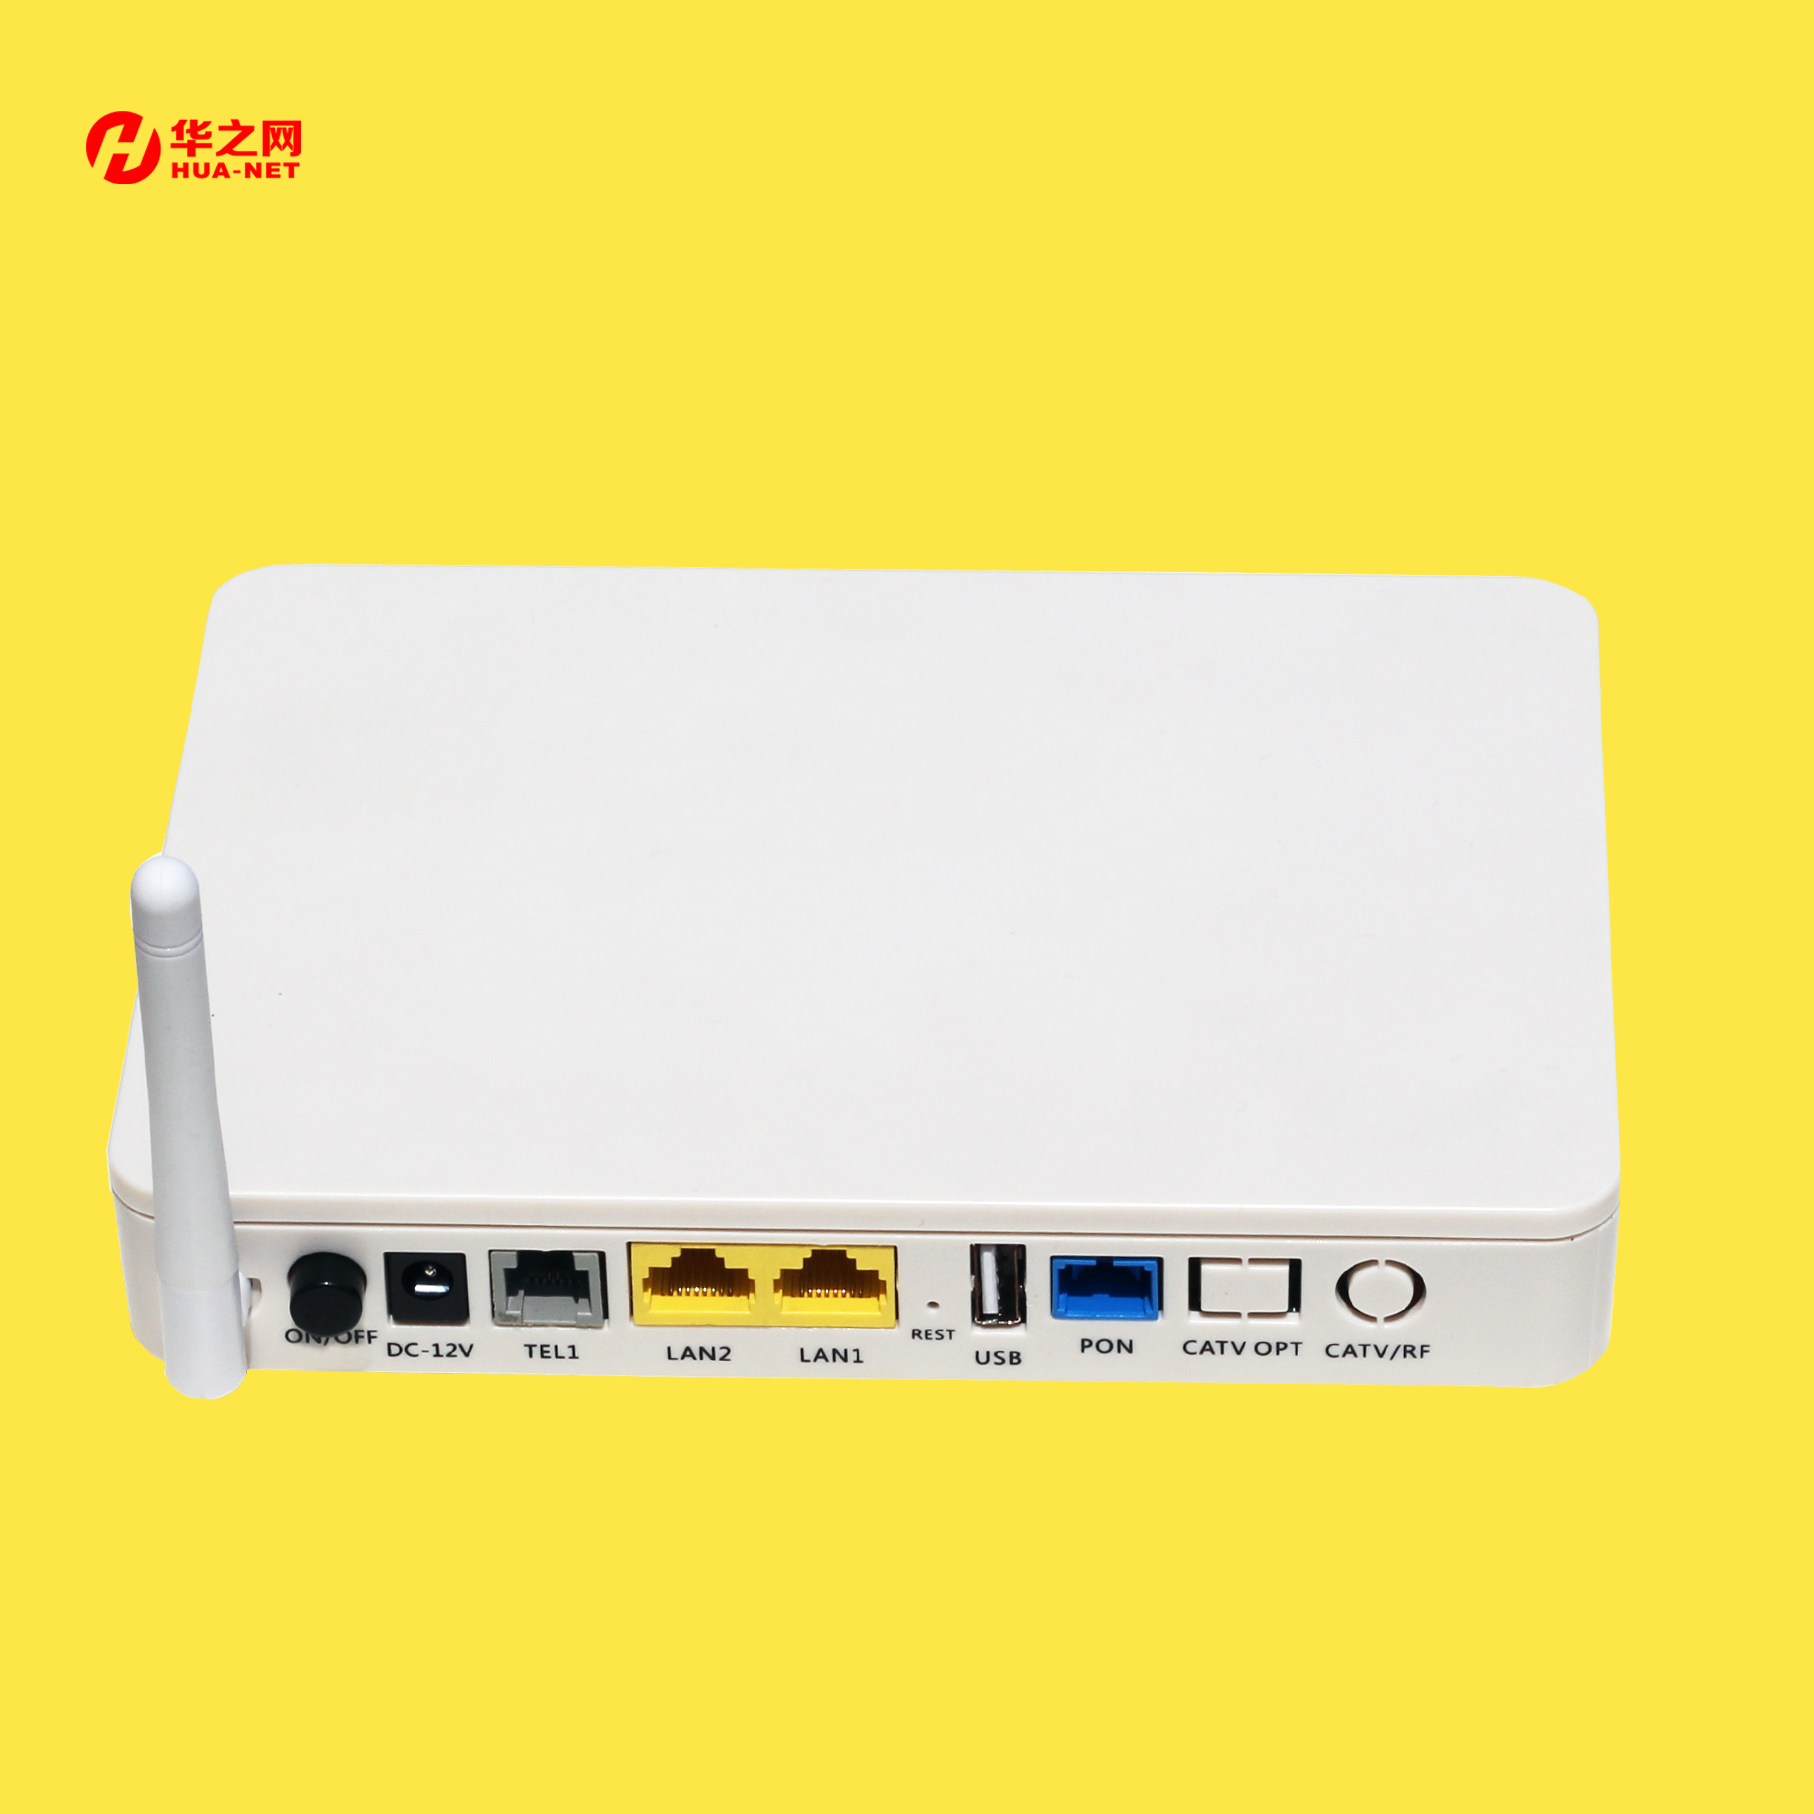 onu gpon catv wifi xpon ont compatible with huawei olts and wifi voice function